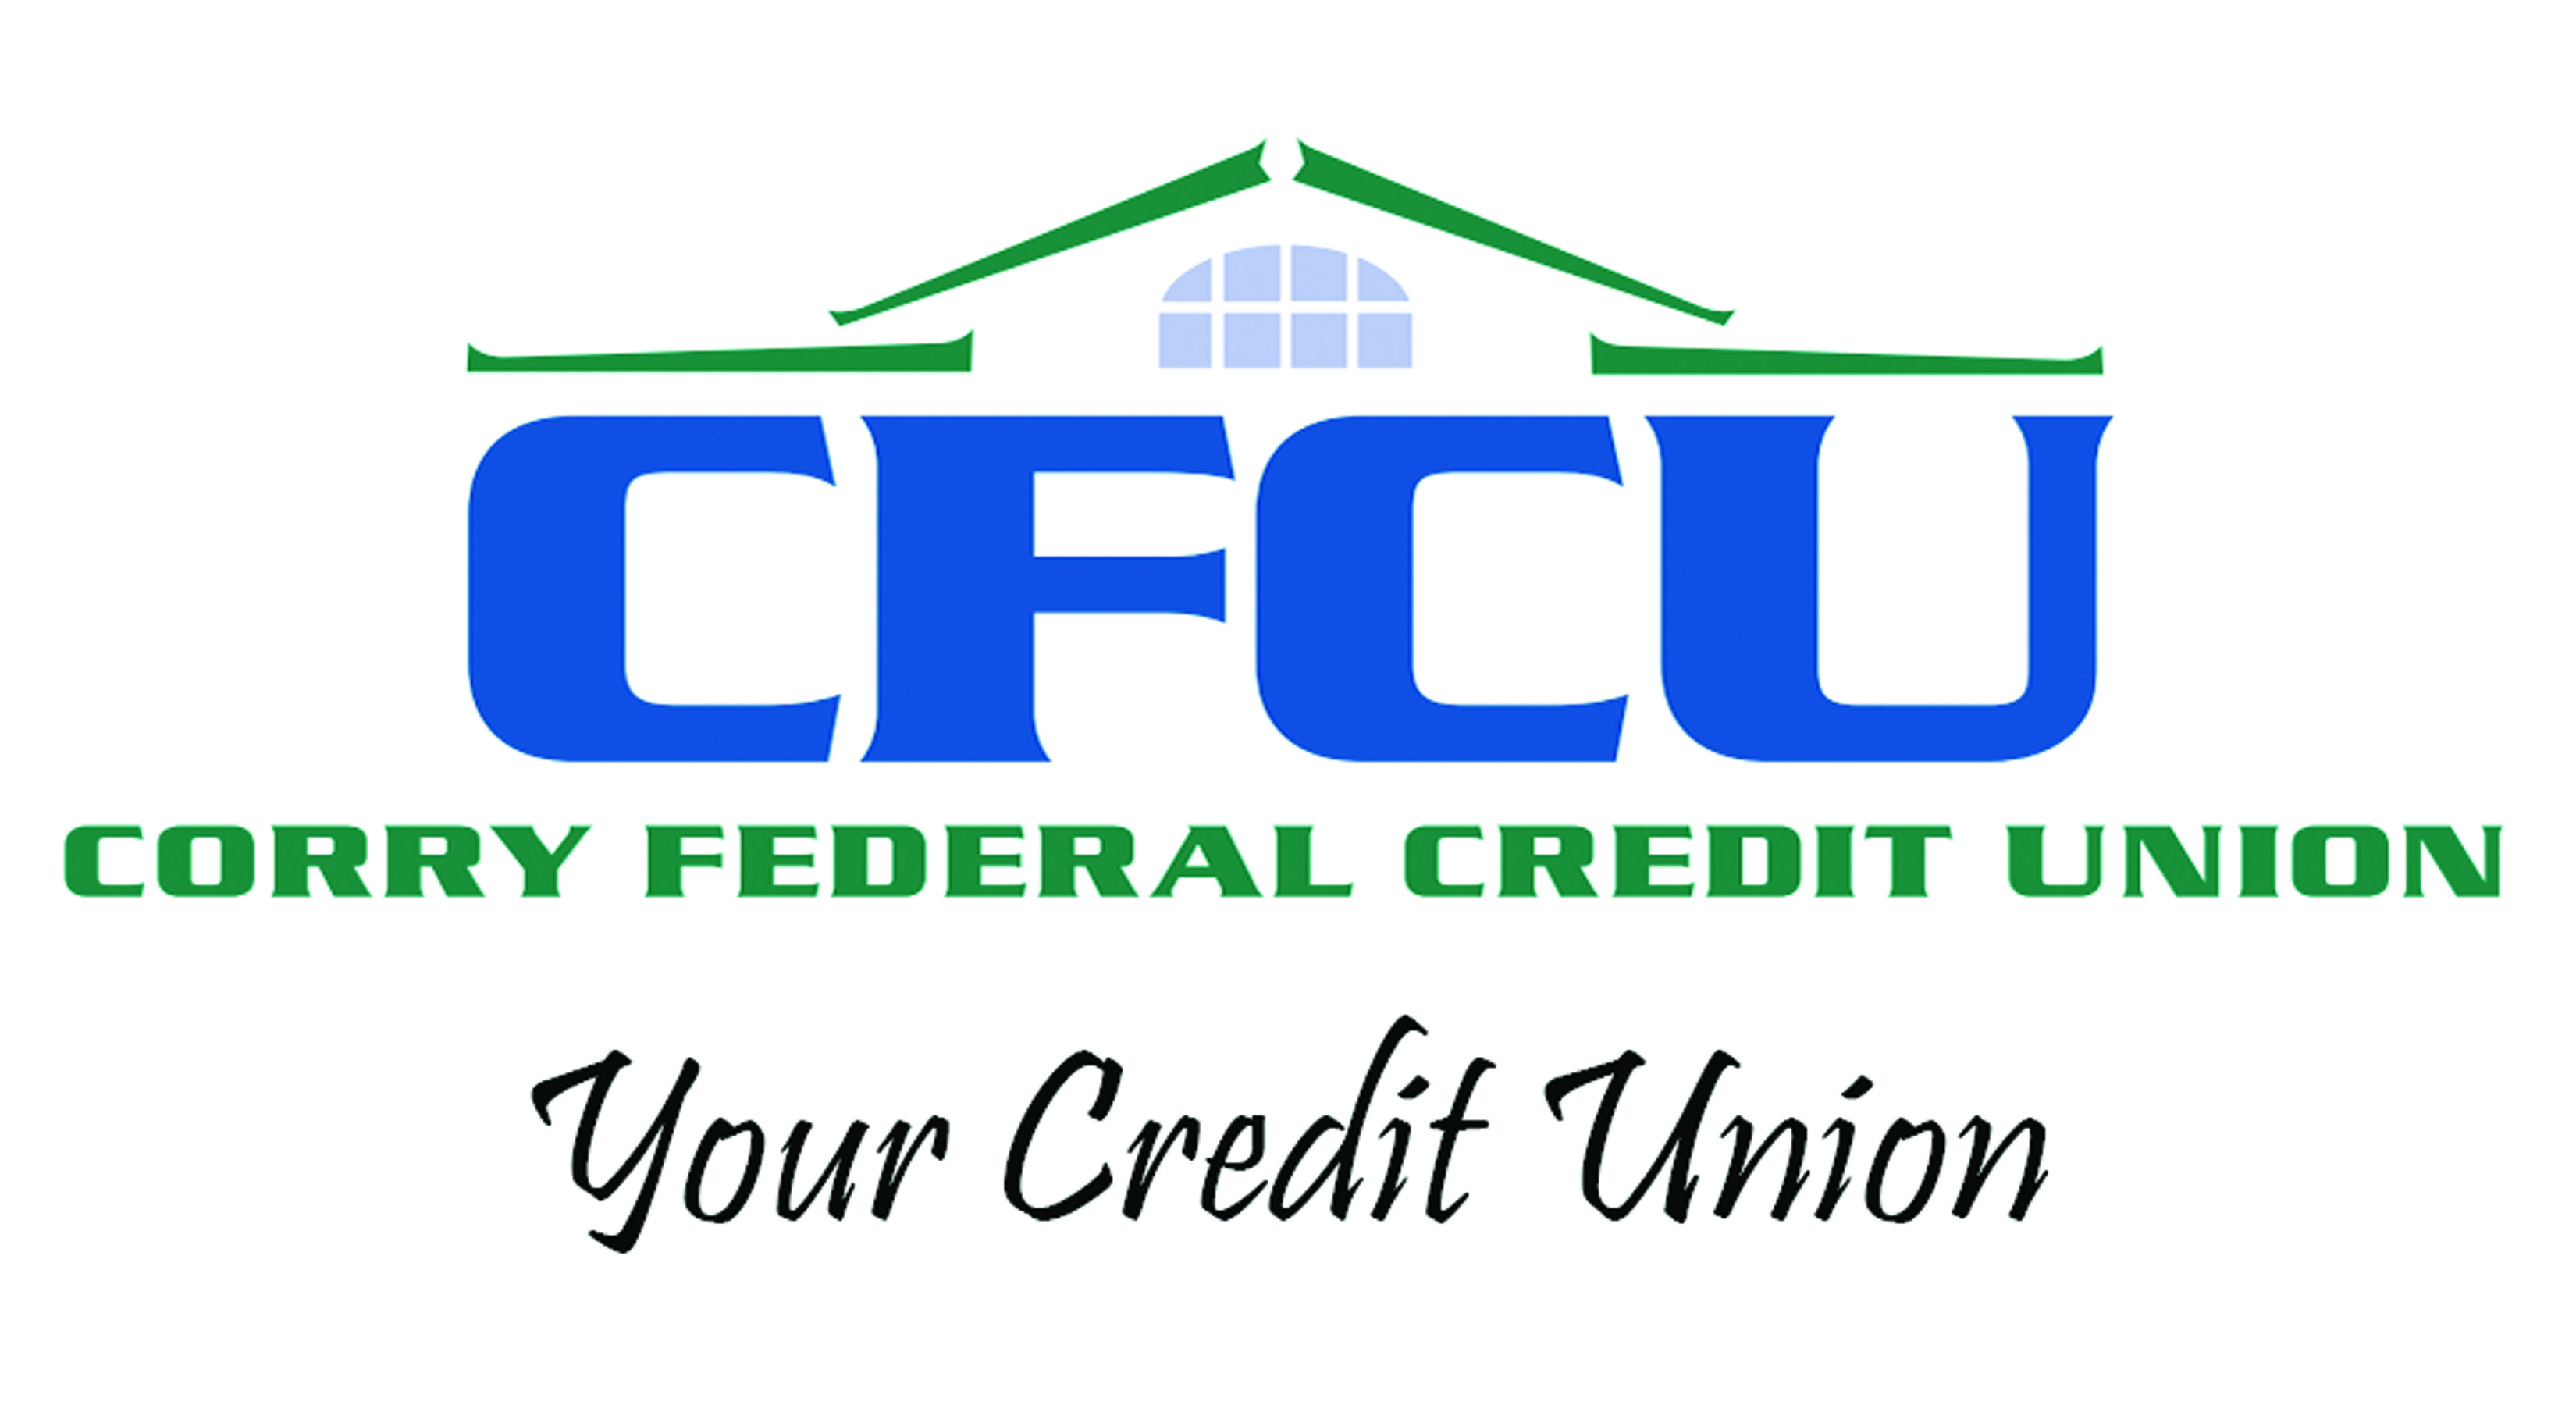 Corry Federal Credit Union Union City